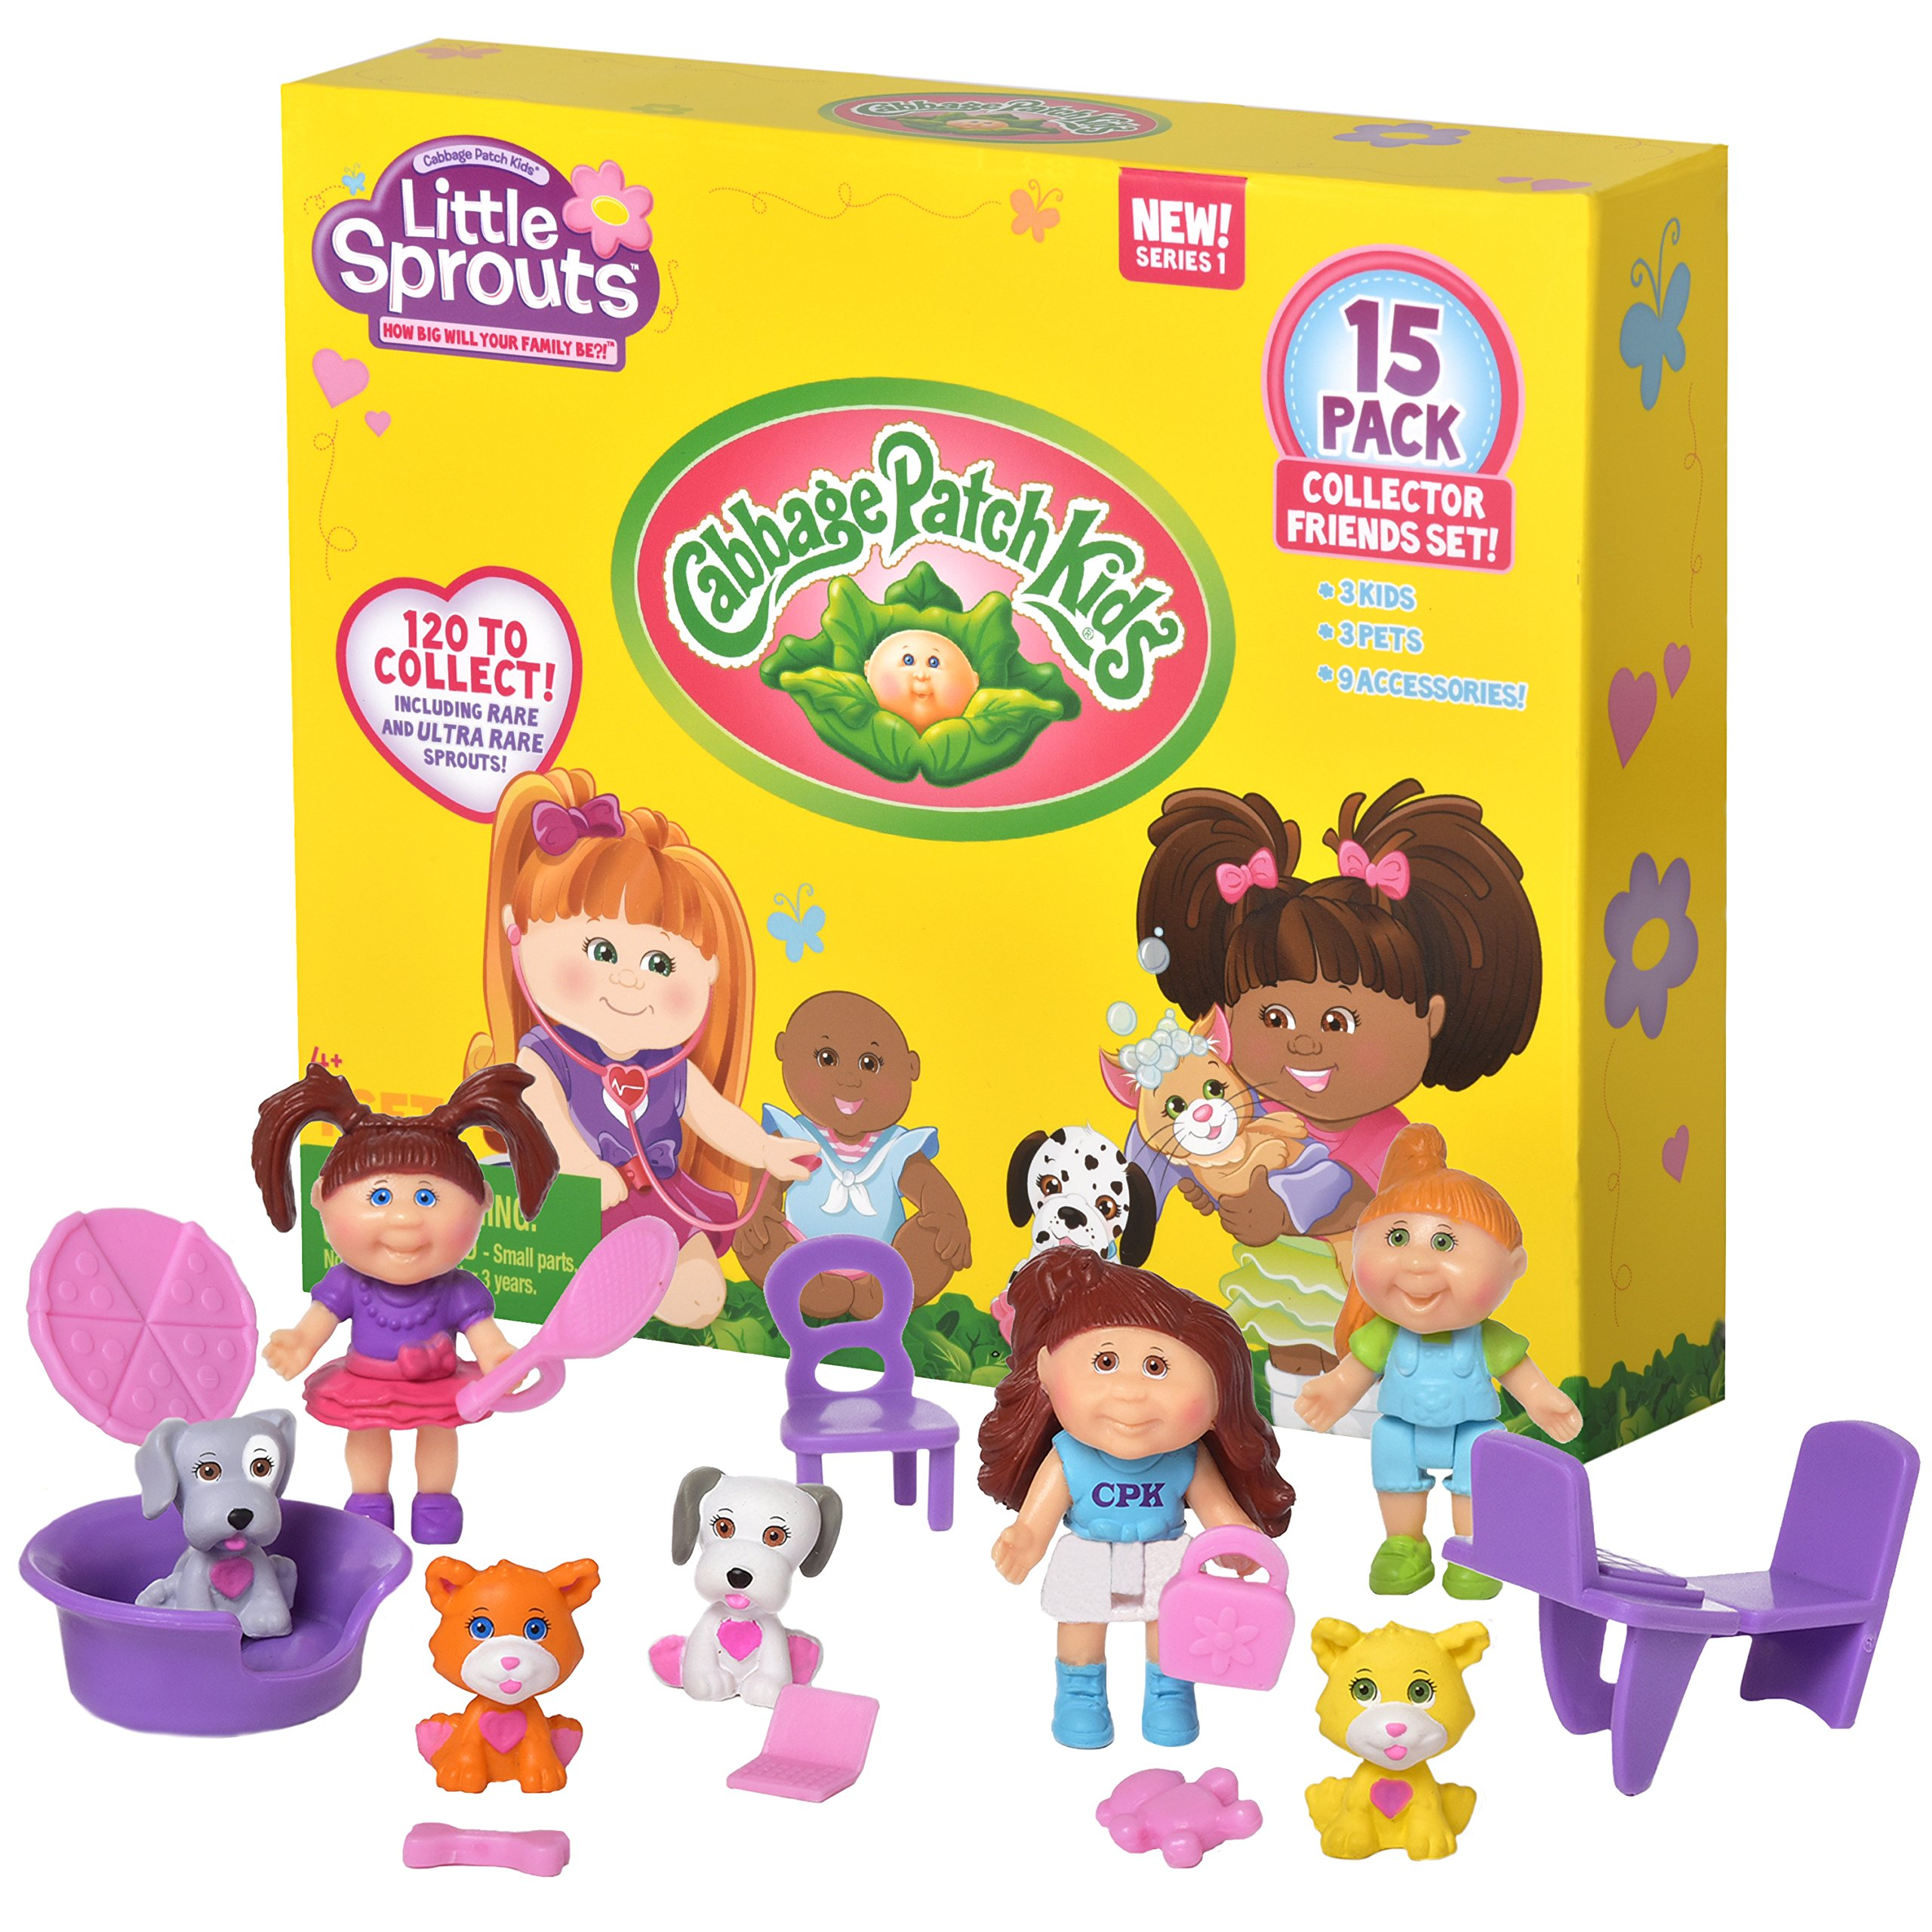 Cabbage Patch Kids Little Sprouts Collector Friends 15 Pack - Perfect for any Girls Small Doll Collections